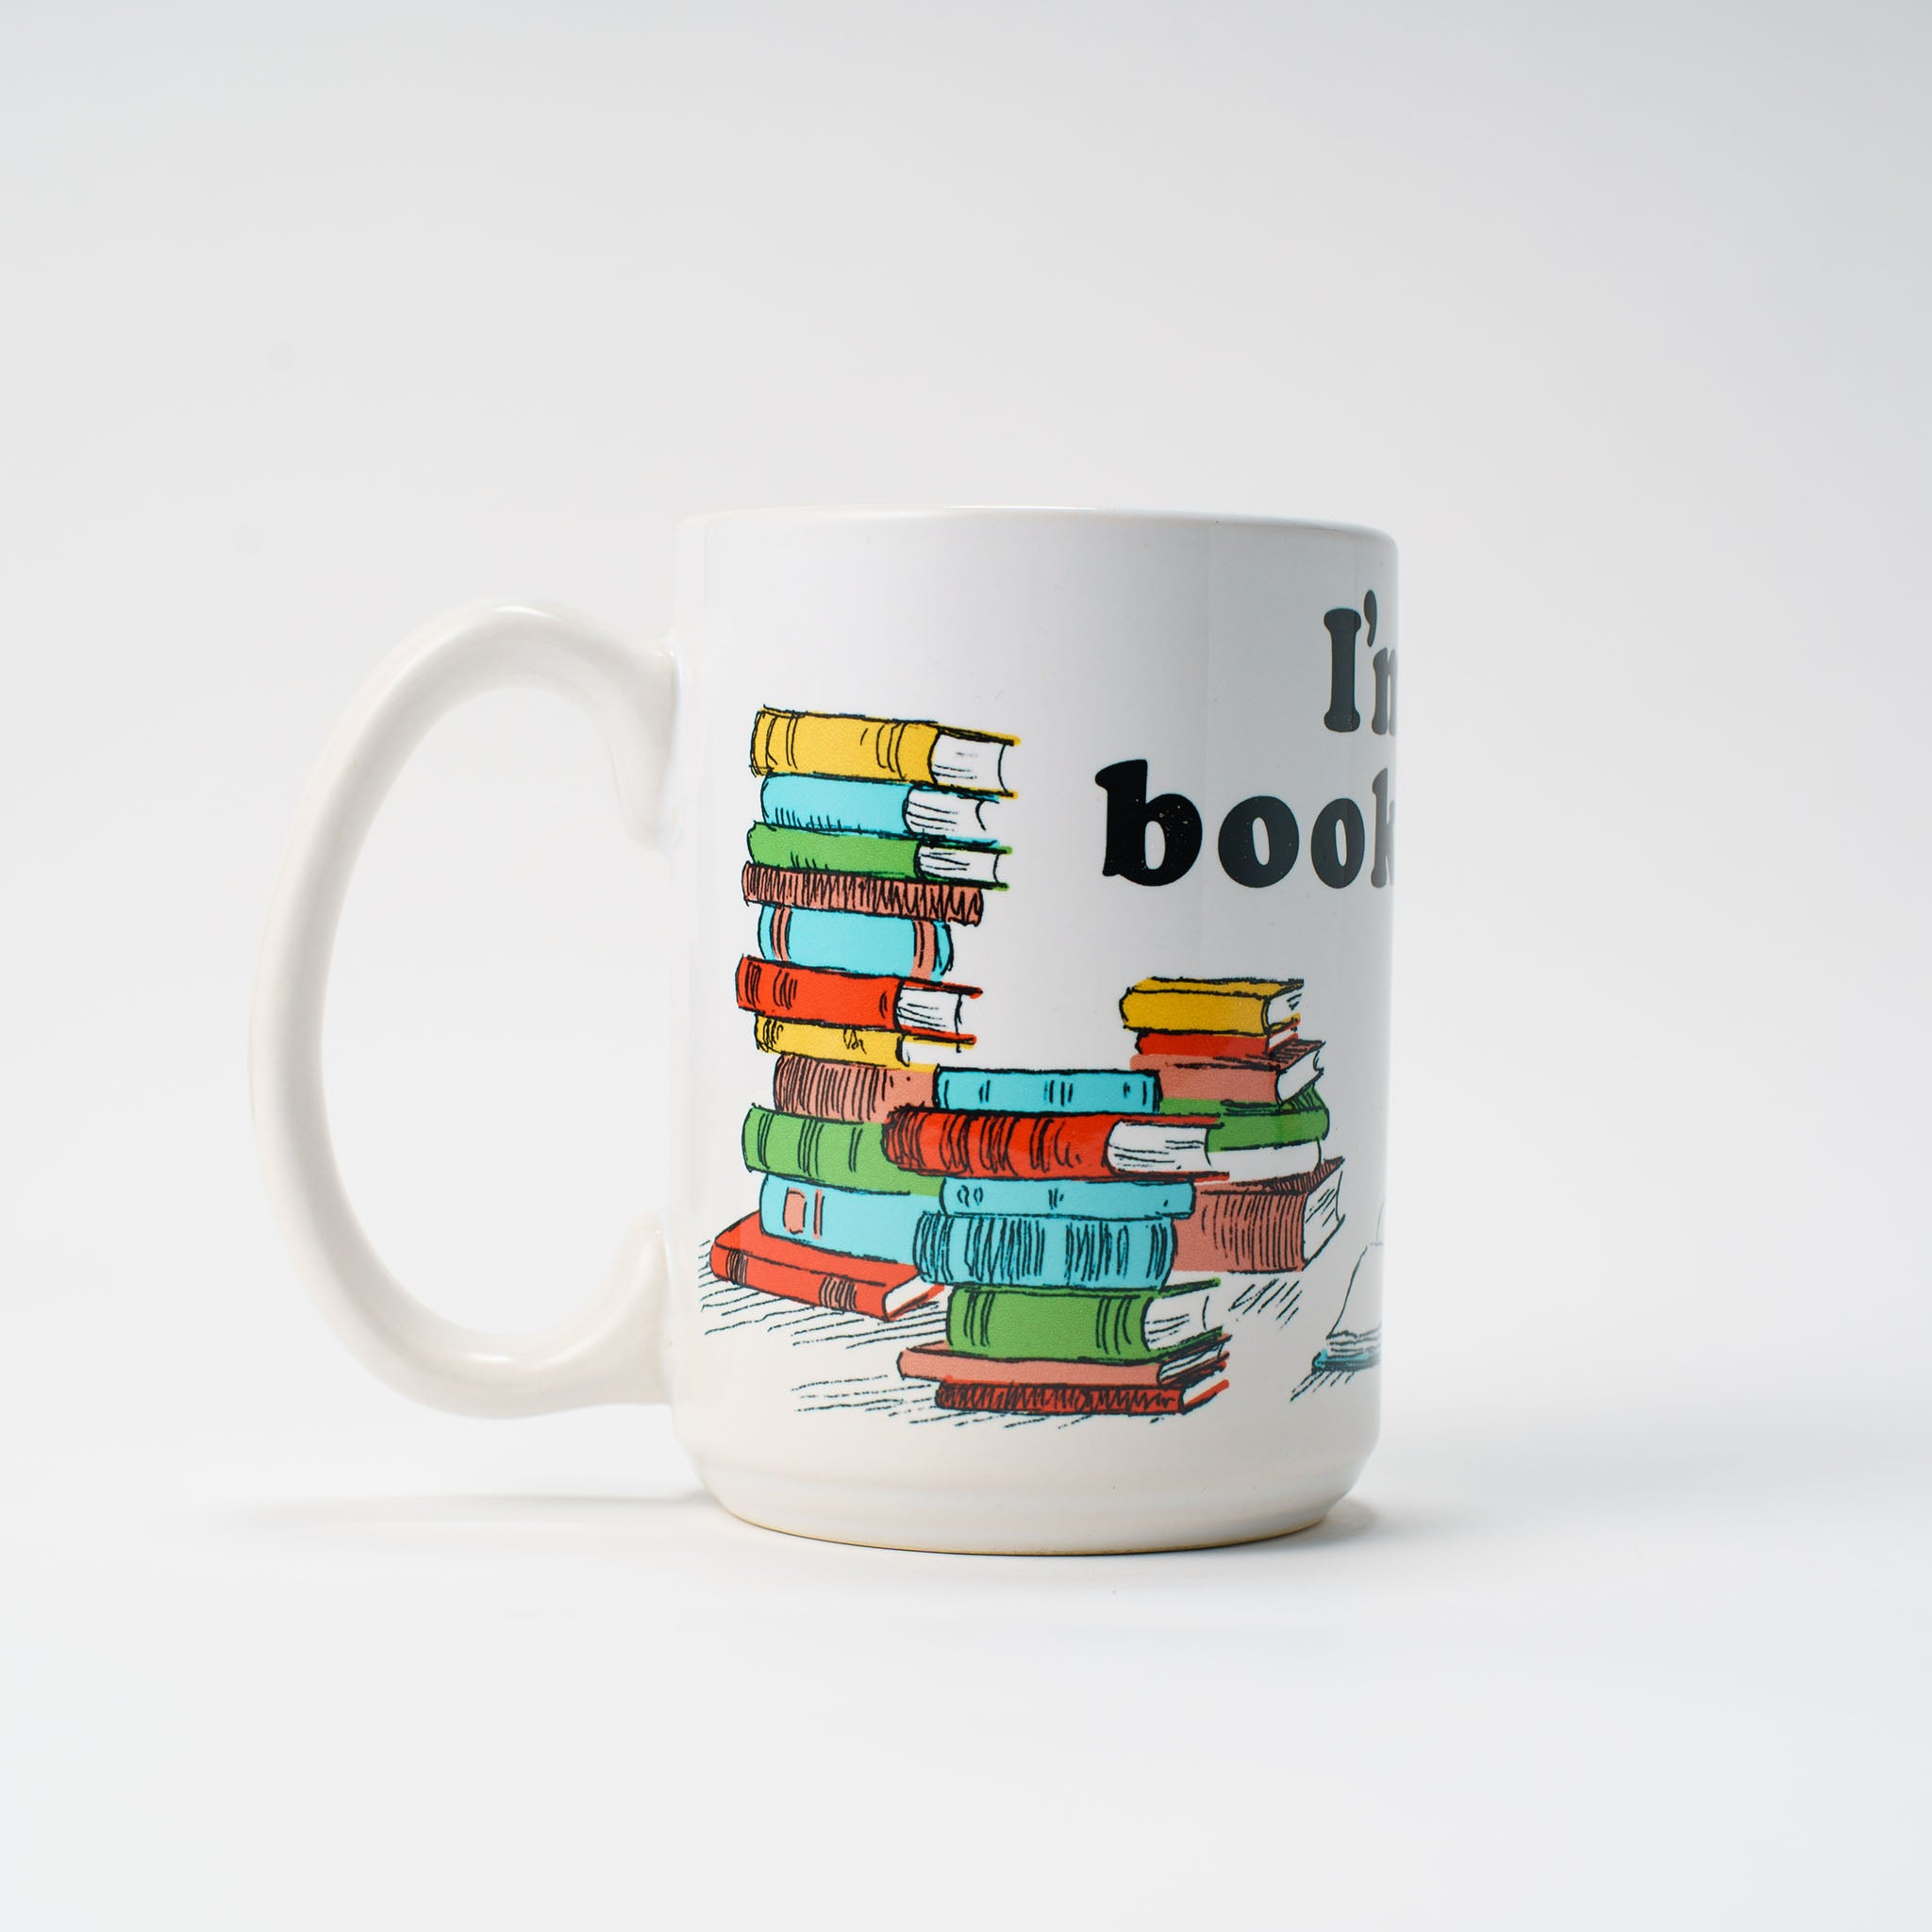 'I'm all booked up.' mug